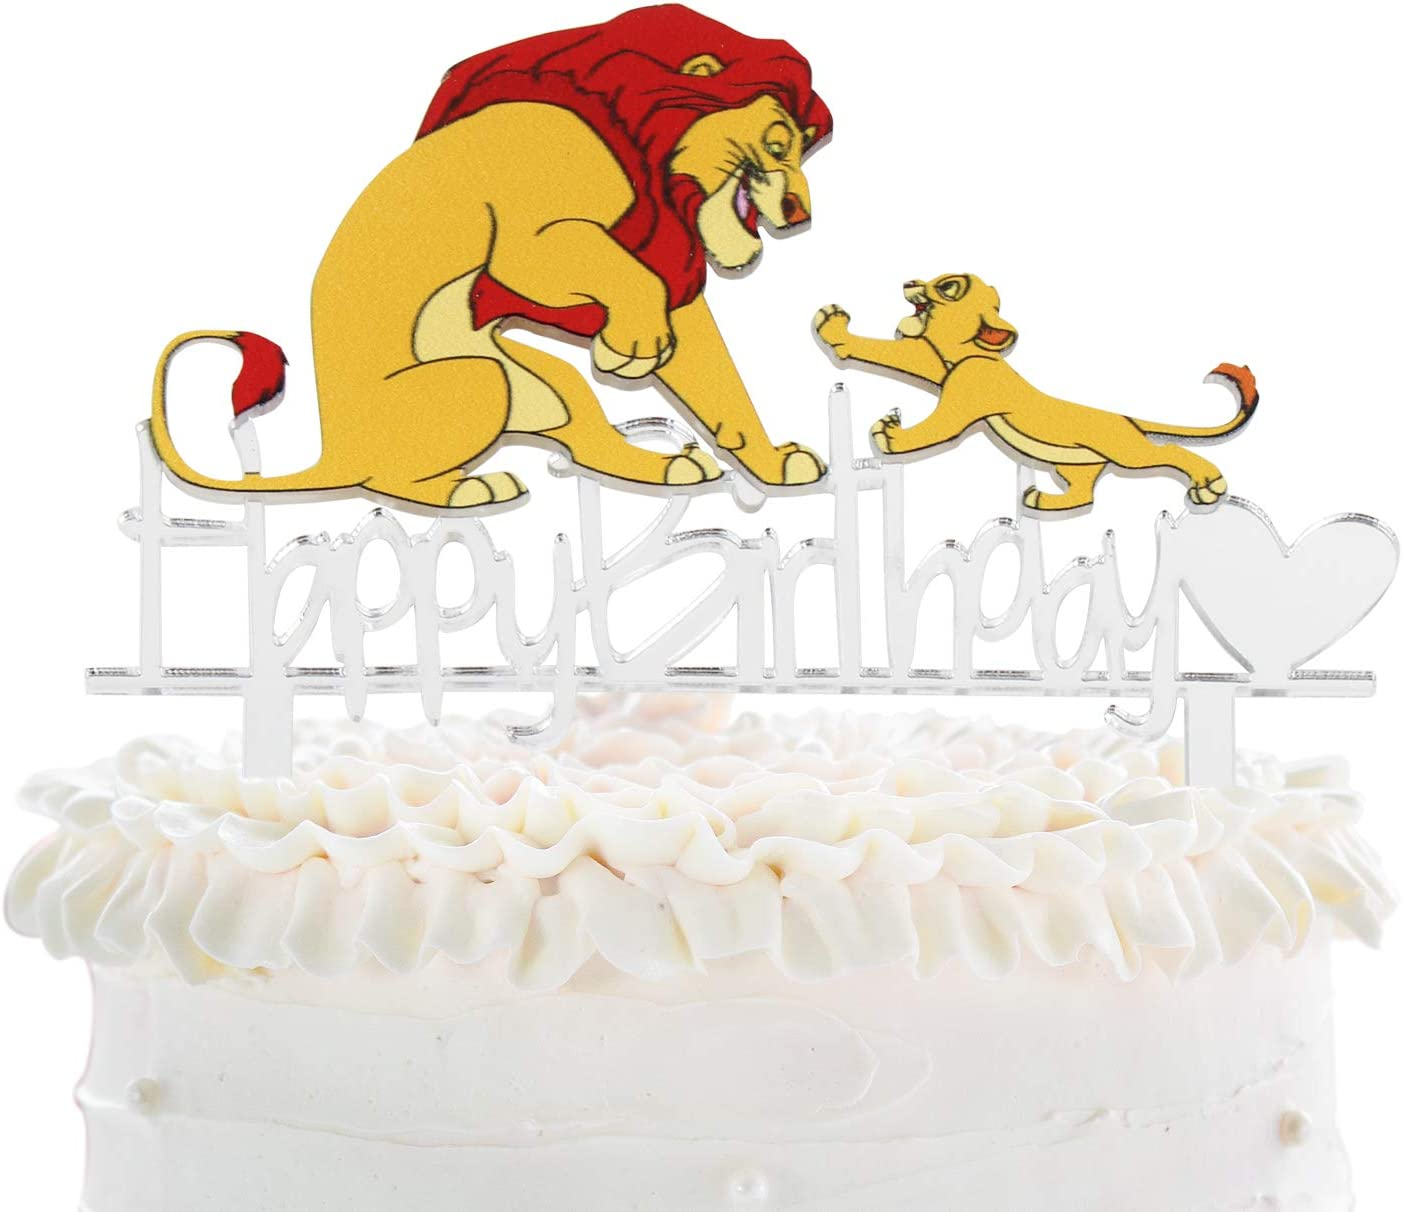 Amazon Com Cartoon Lion Simba Happy Birthday Cake Topper Disney The Lion King Jungle Animals Safari Party Acrylic Cake Decor Baby Shower Kids Birthday Party Decoration Toys Games